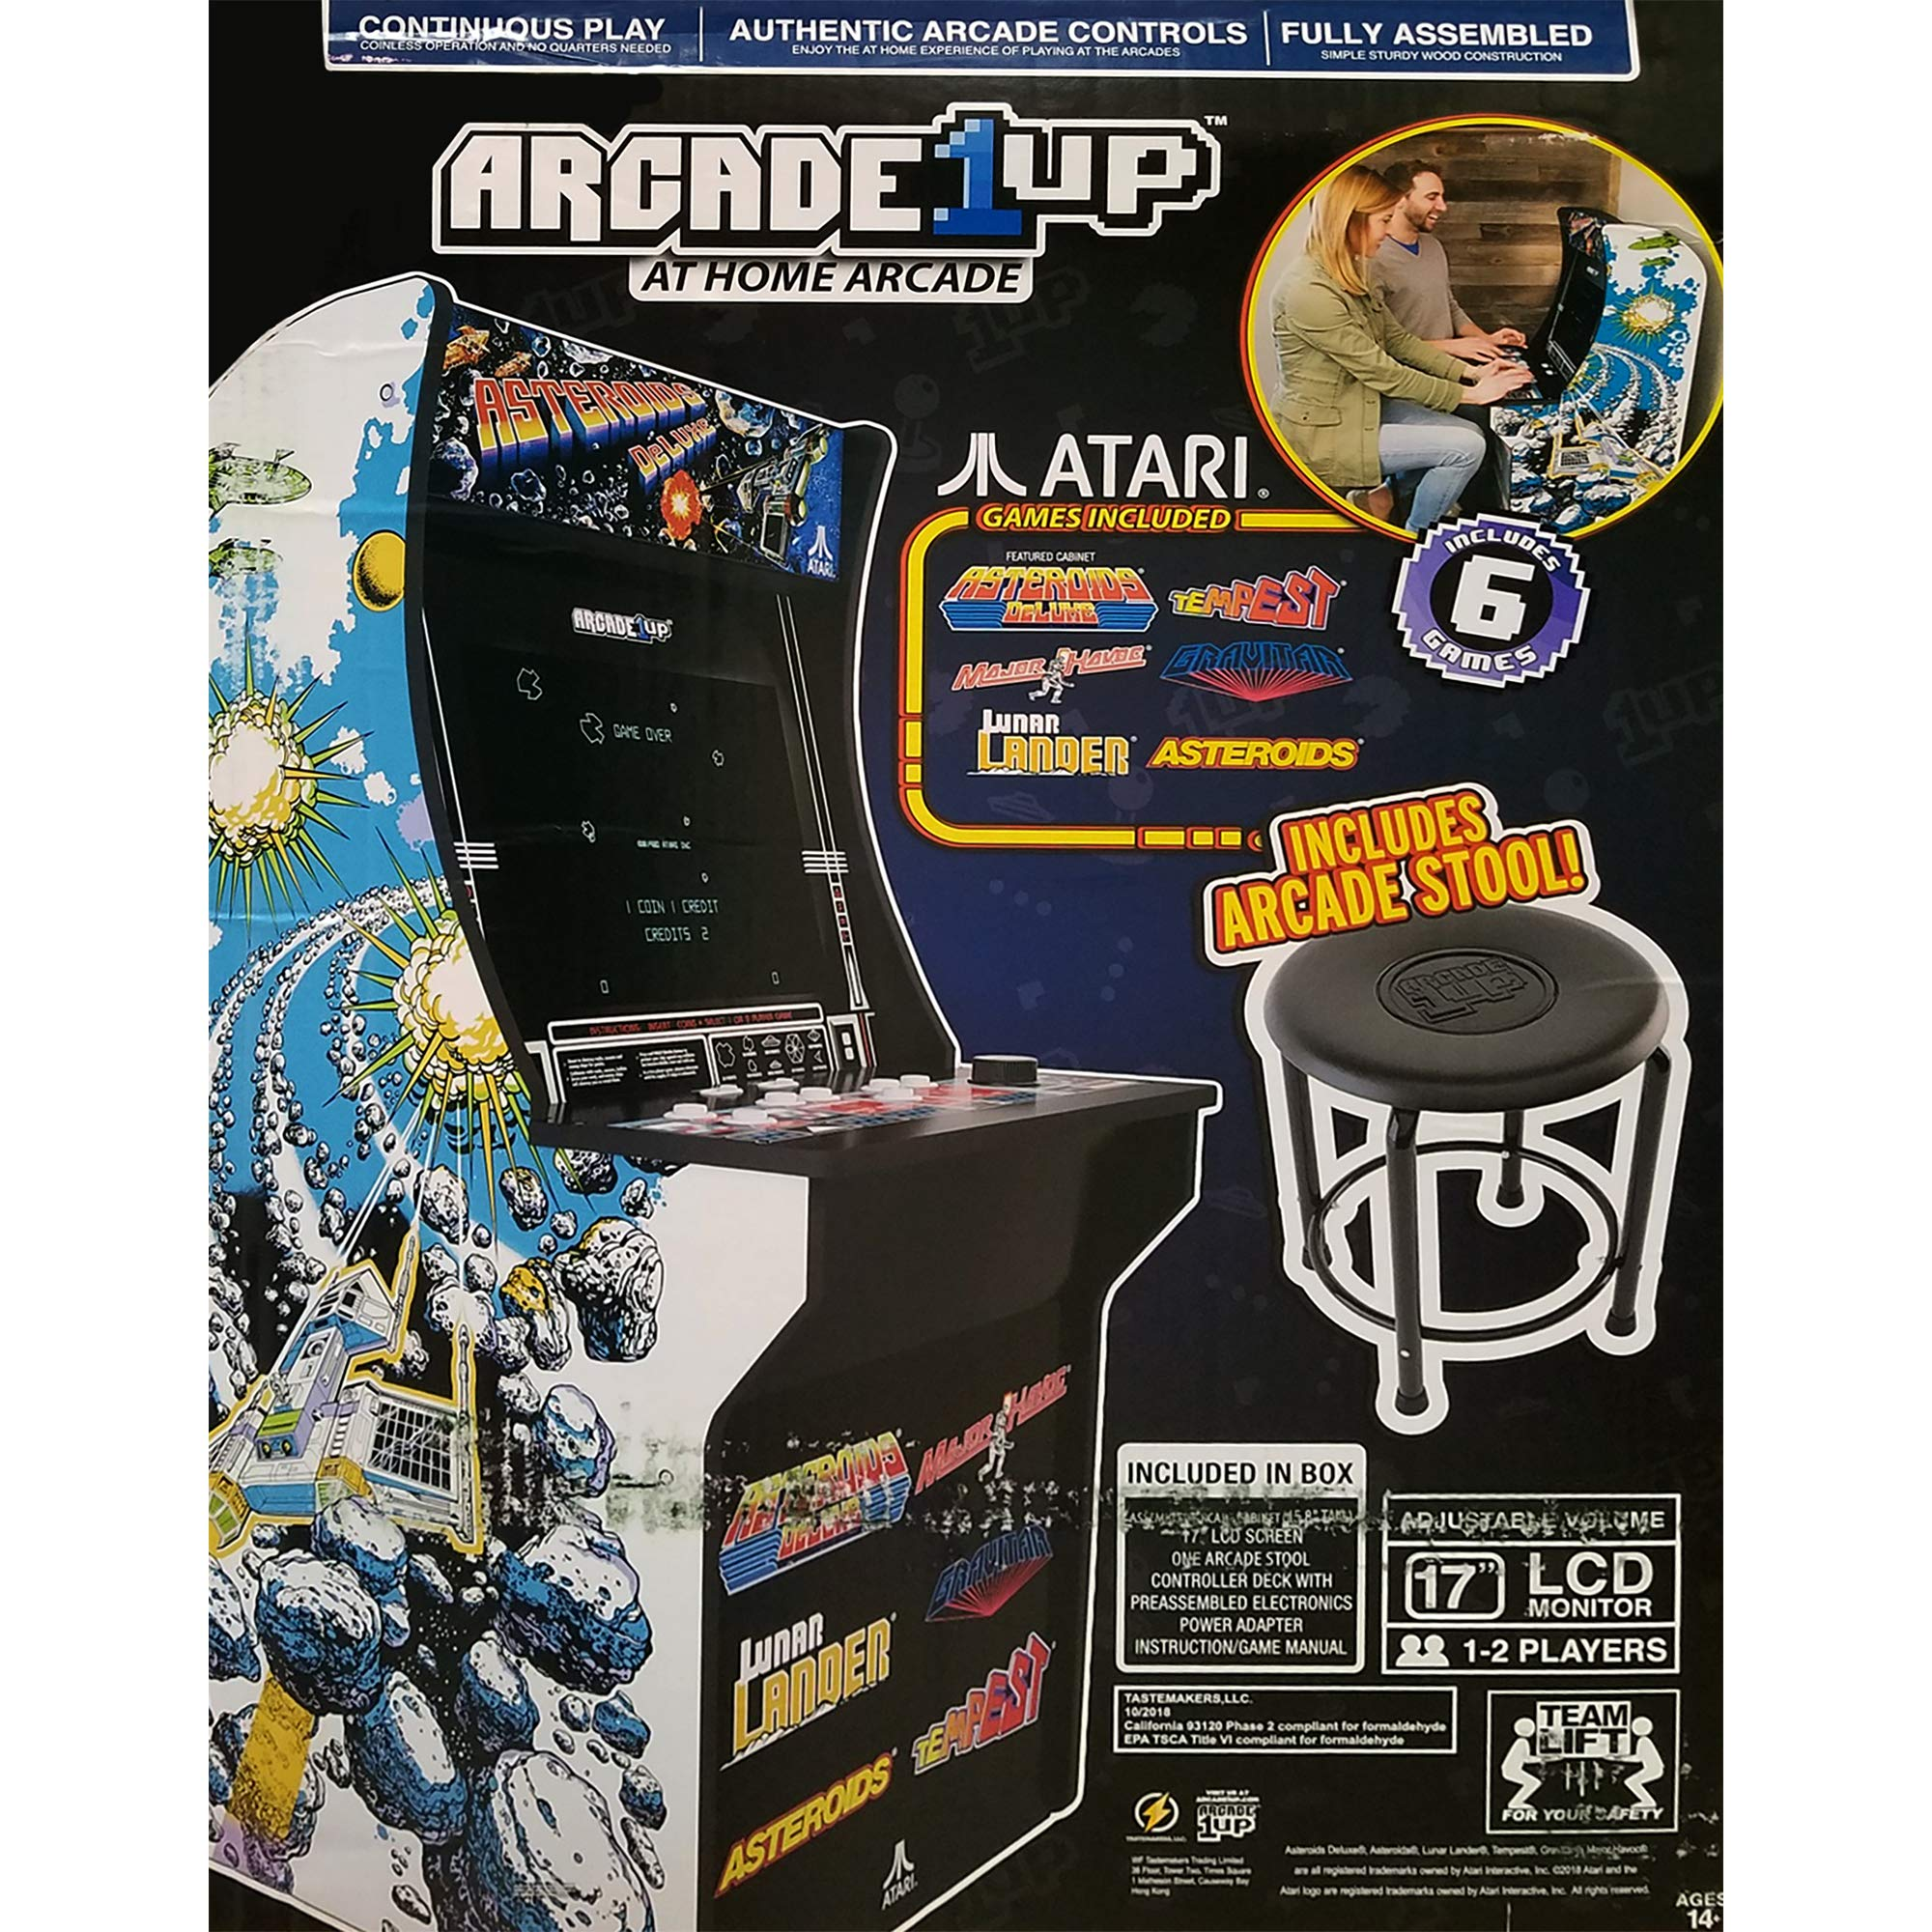 Creative Arcades 6 in 1 Atari Cabinet Arcade 1Up Machine for Home | 6 Classic Games Pre-Installed | Plug and Play - Fully Assembled | 1 - 2 Player | Stool Included | 17'' Screen | Coinless Operation by Creative Outdoor Distributor (Image #4)